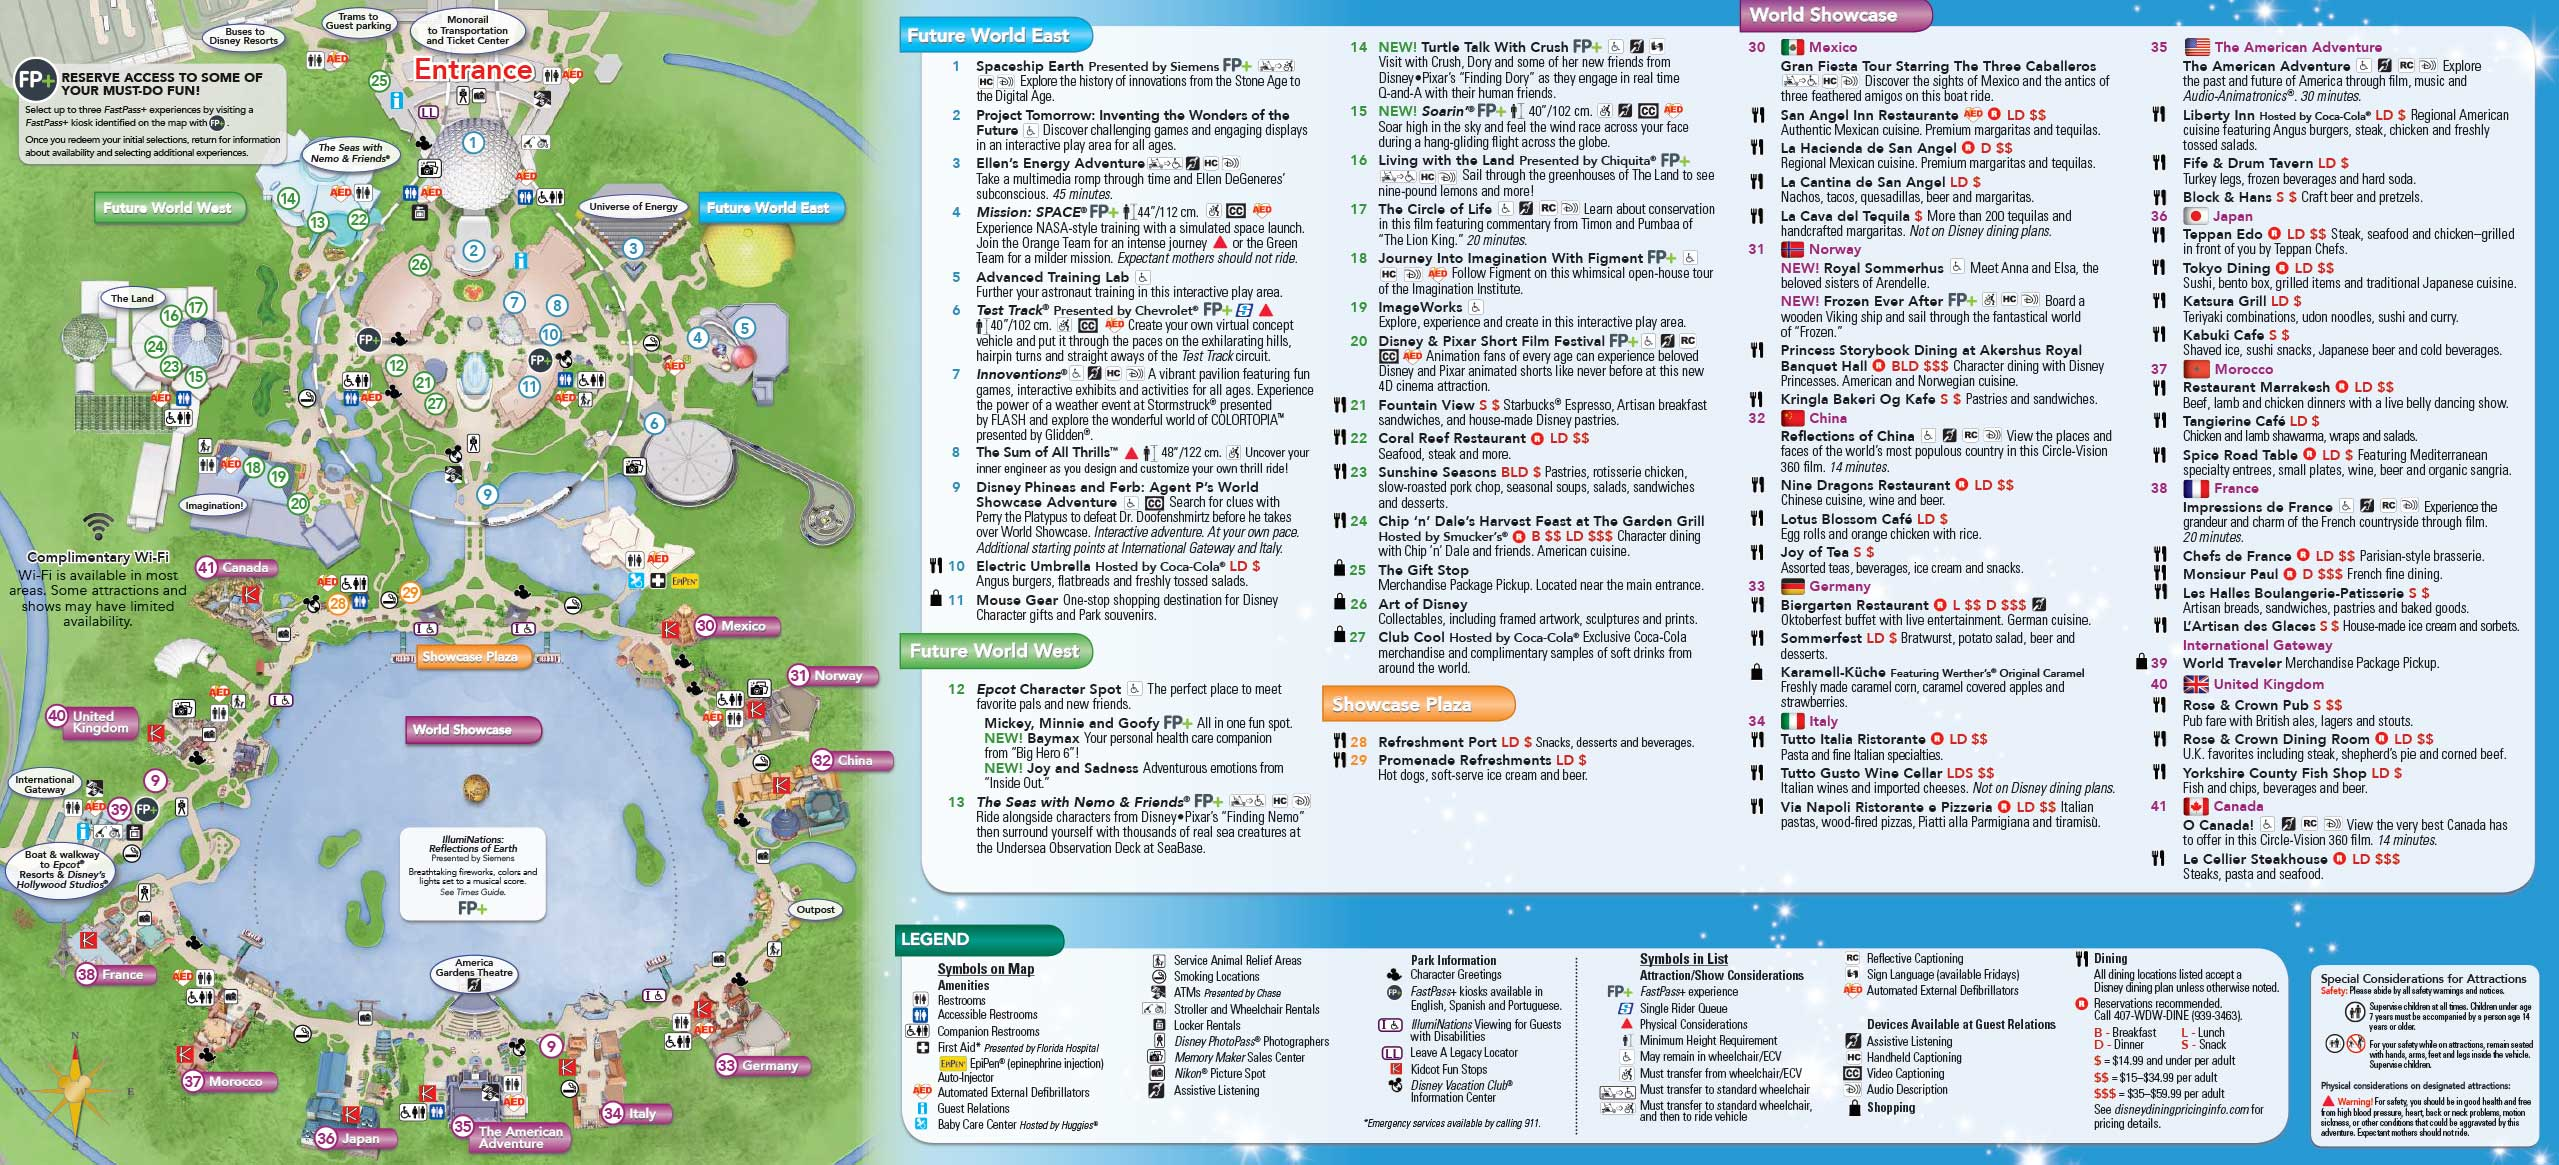 June 2016 walt disney world park maps photo 1 of 4 gumiabroncs Image collections